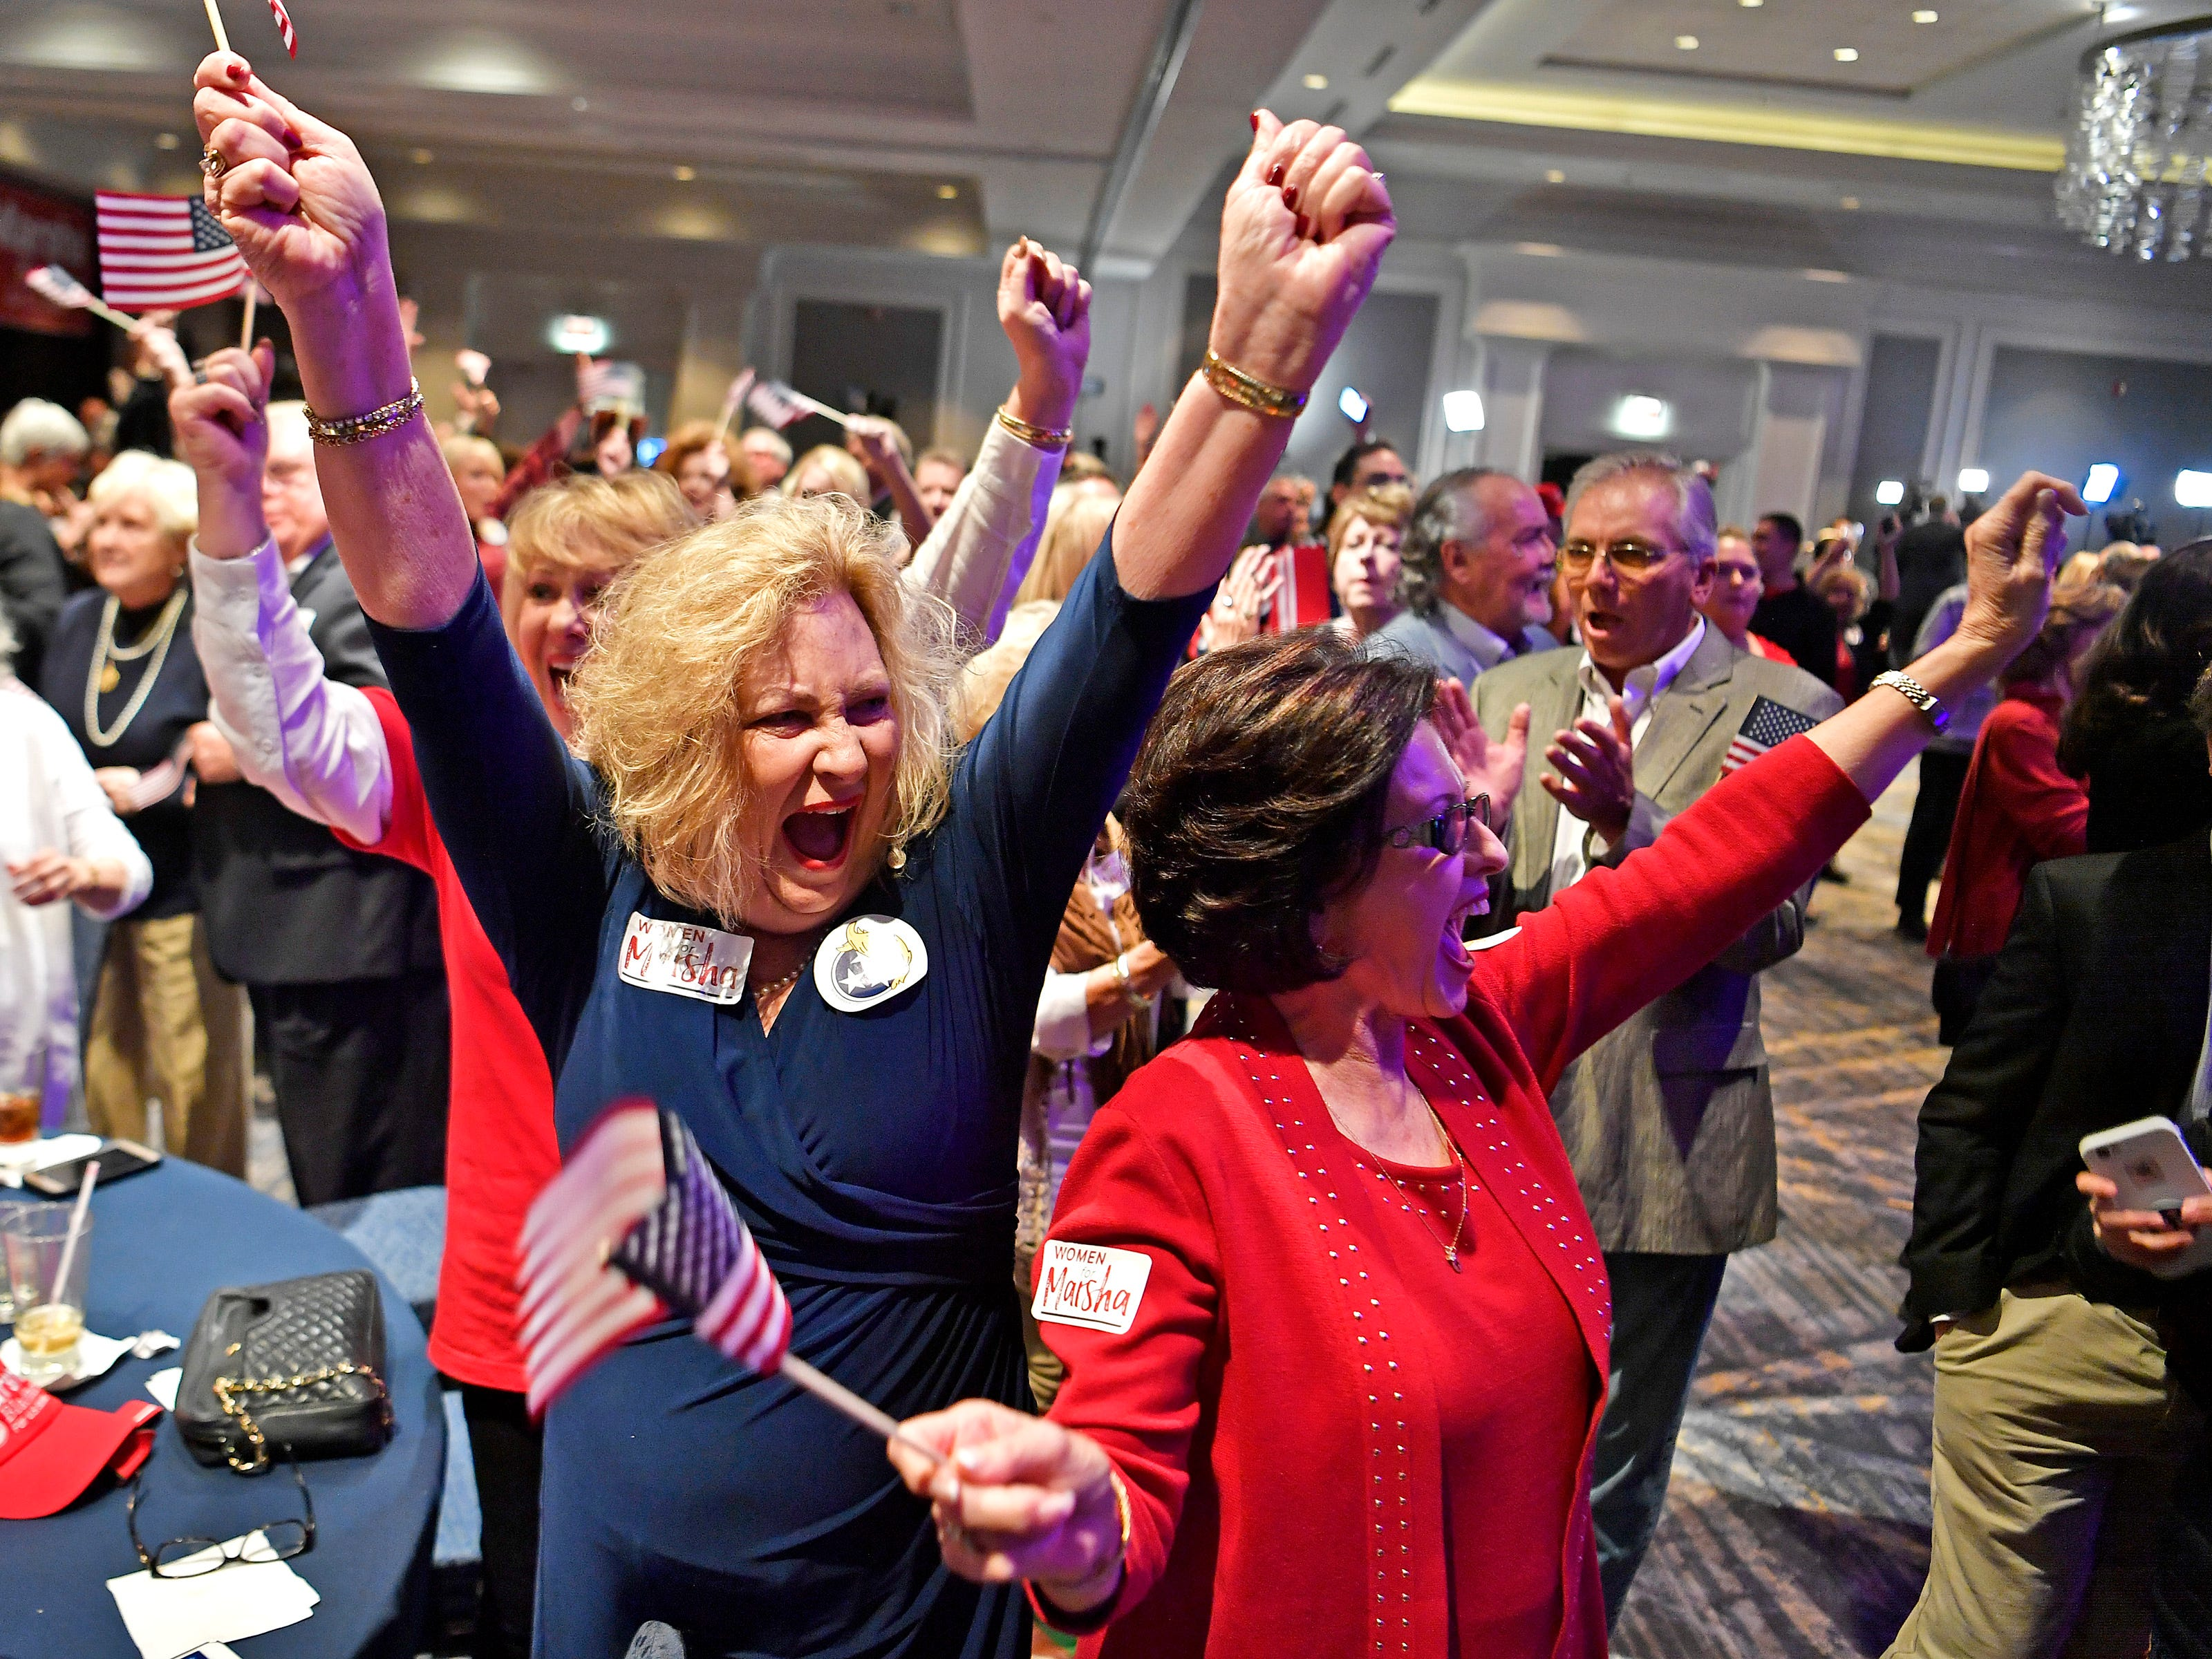 Cheryl Petty and Donna Choate celebrate results at the election night watch party for Republican U.S. Senate candidate Marsha Blackburn Tuesday, Nov. 6, 2018, in Franklin, Tenn.